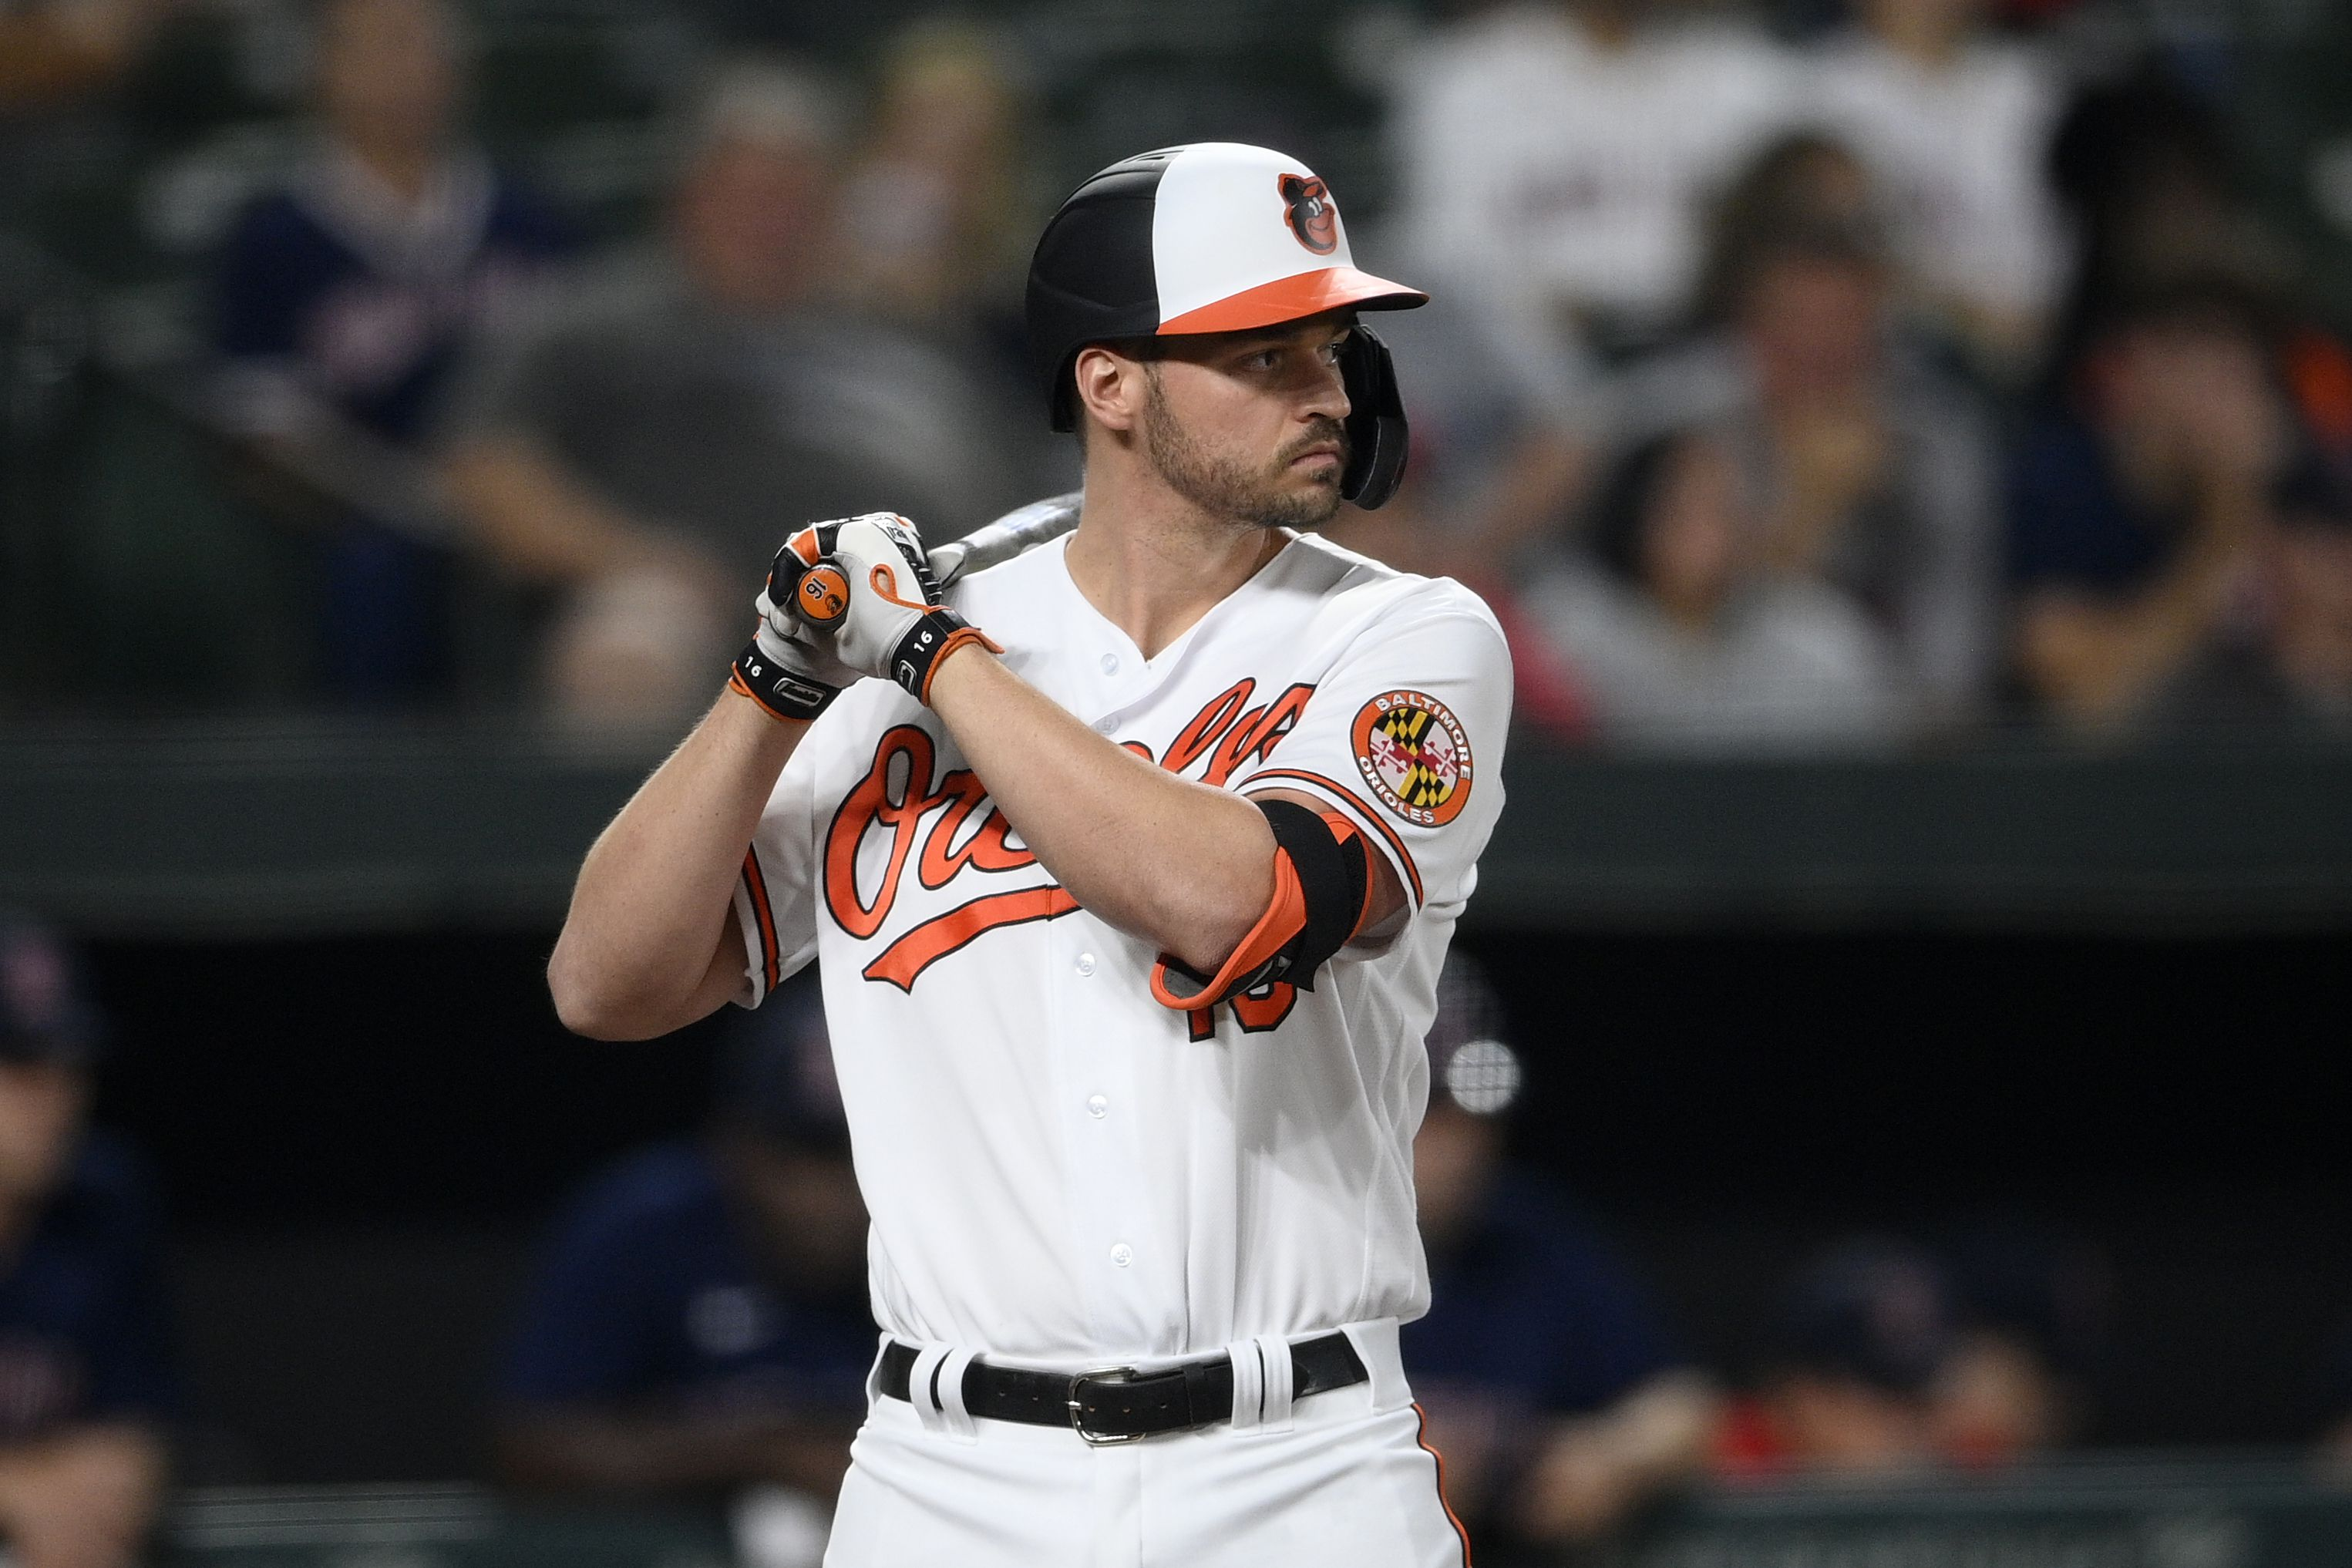 Trey Mancini hopes to return to Orioles in 2022, but if not, 'he's happy with what he left in Baltimore'